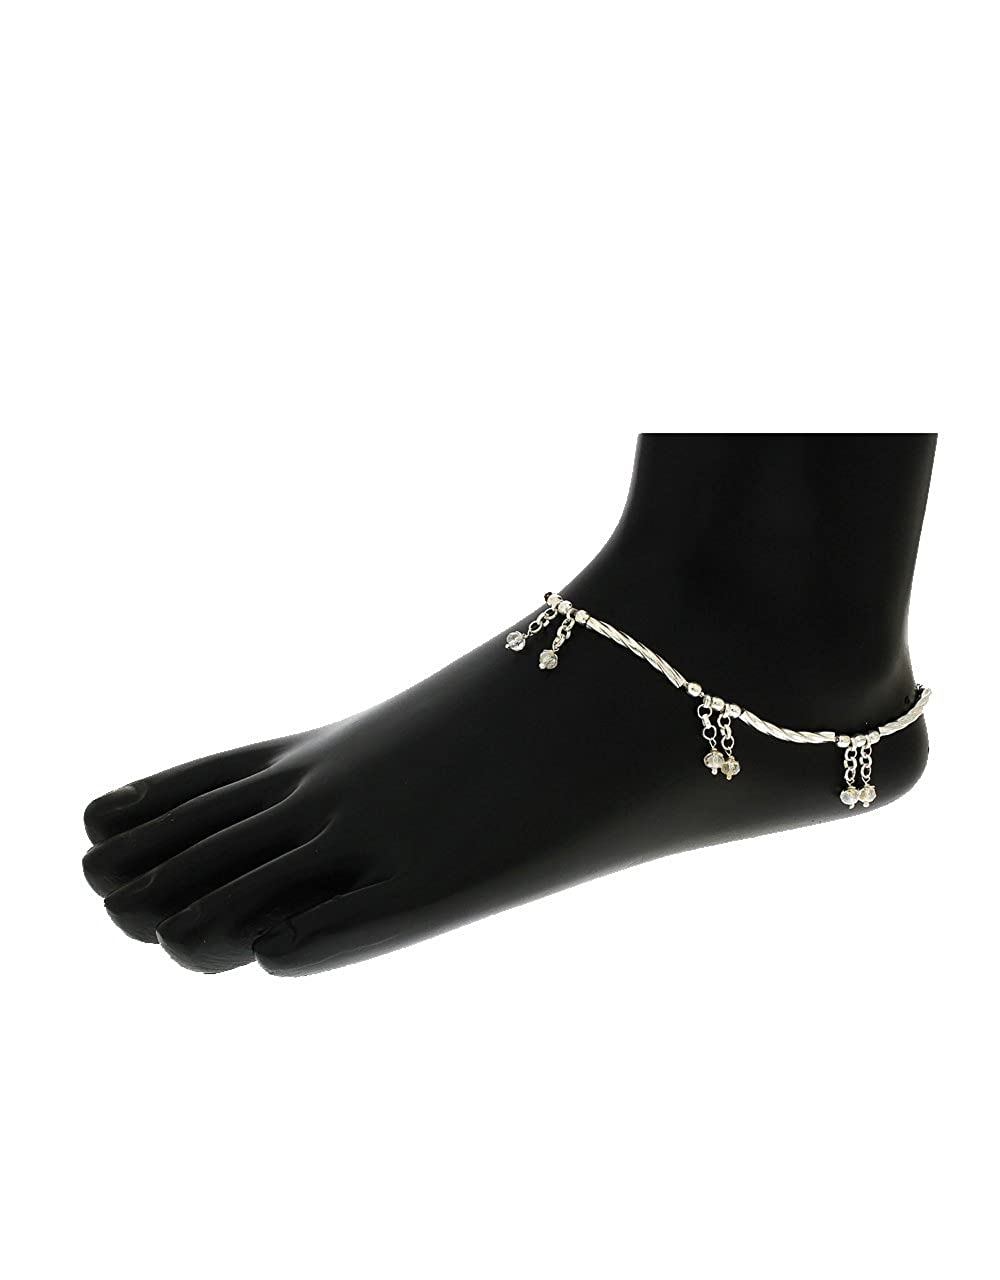 Anuradha Art Silver Colour Styled with Designer Hanging Crystal Beads Droplets Anklets//Payal for Women//Girls